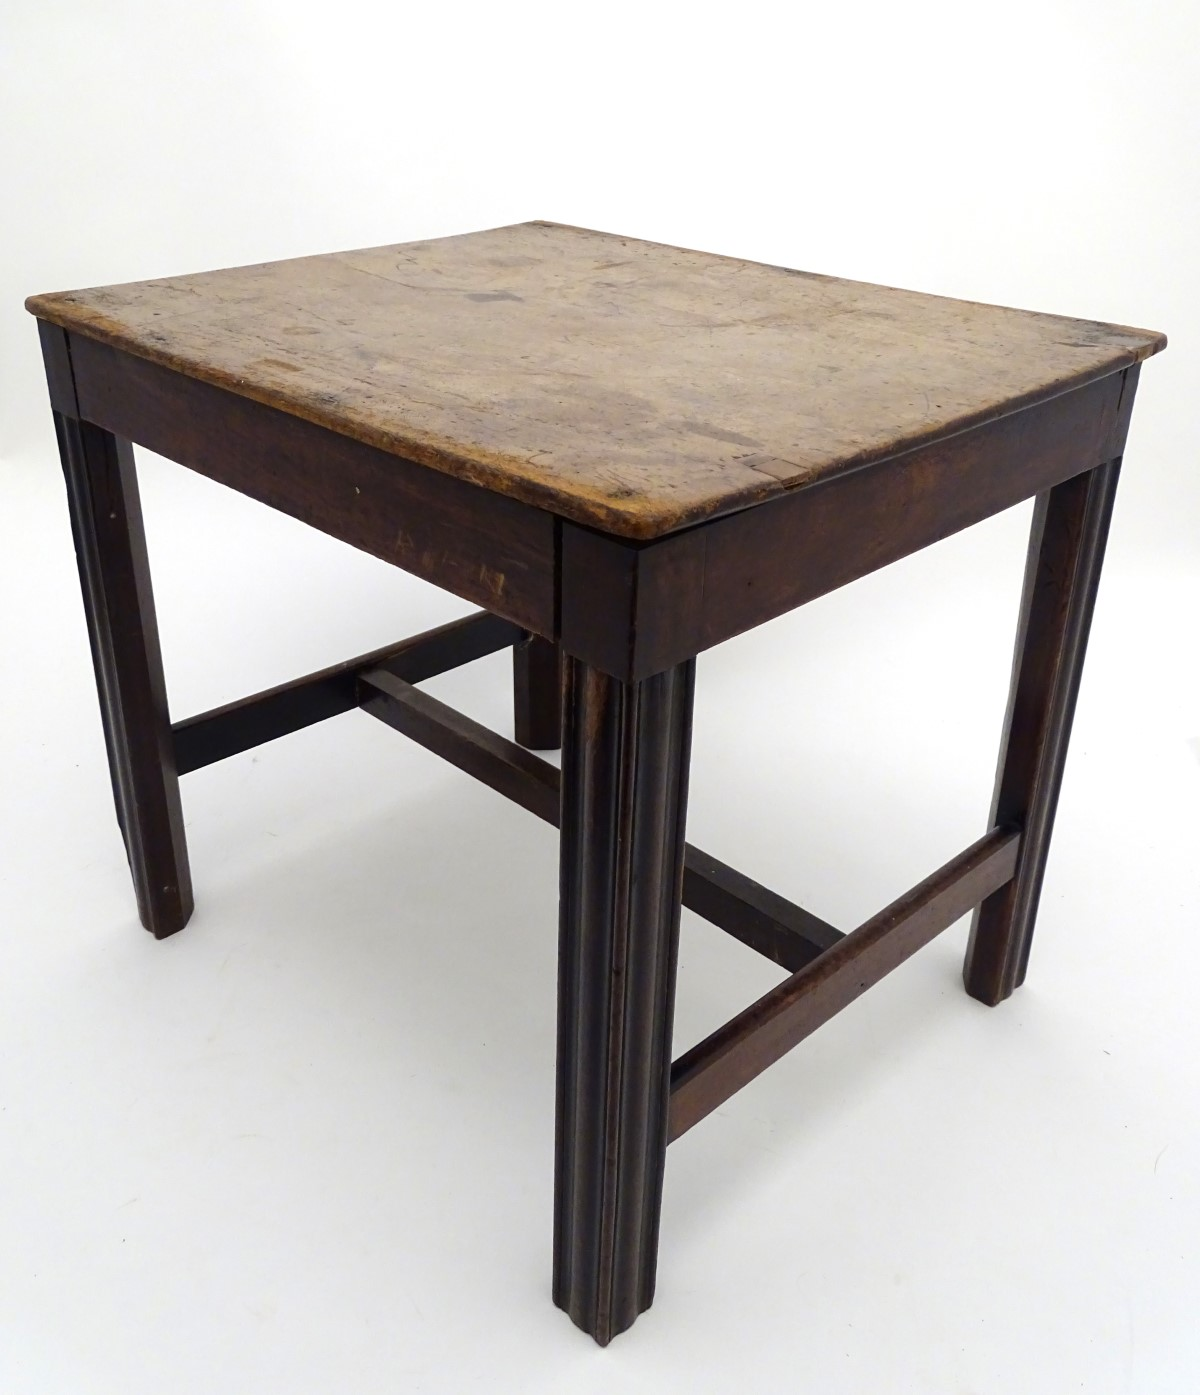 A late 18thC mahogany low table / stool with moulded legs and a chamfered frame, - Image 4 of 7